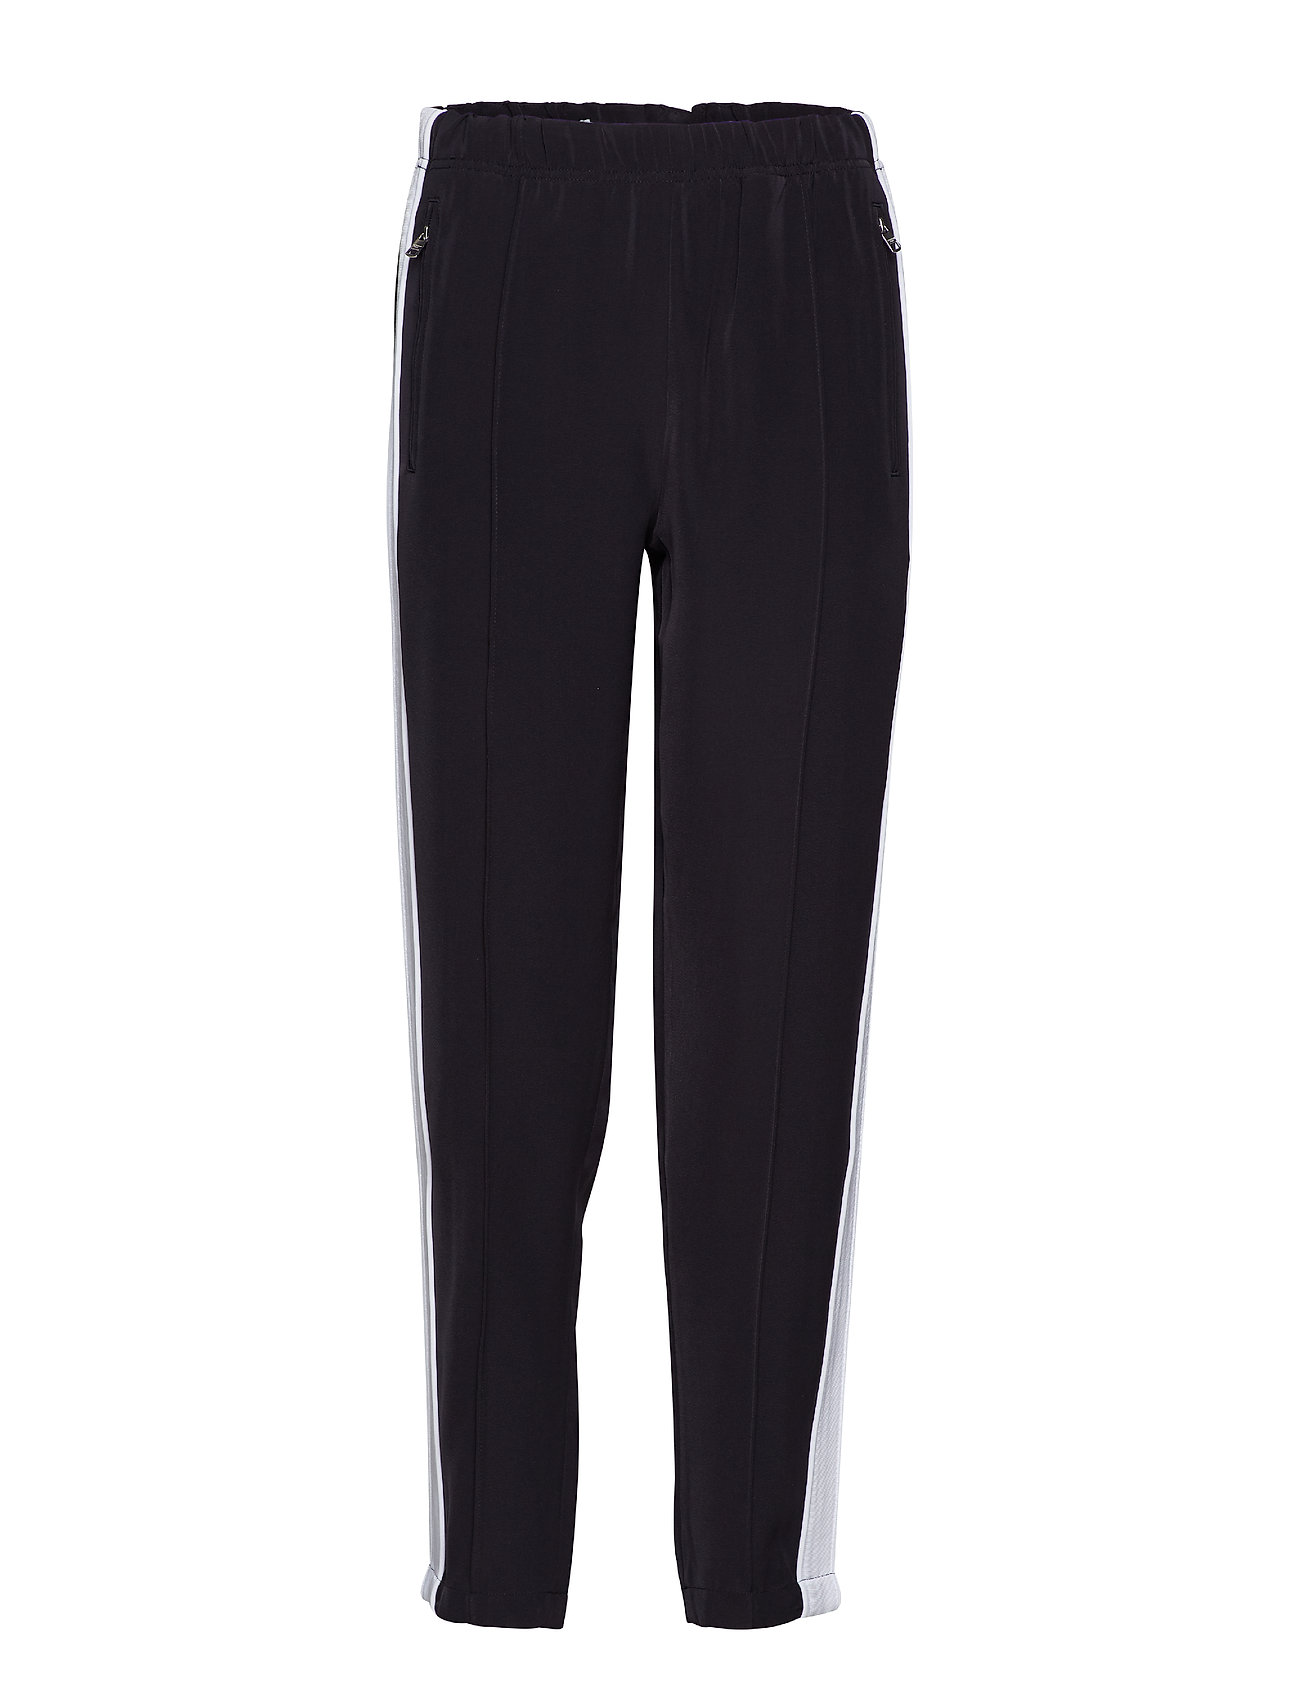 Calvin Klein Jeans TAPERED DRAPEY TRACK - CK BLACK/WHITE